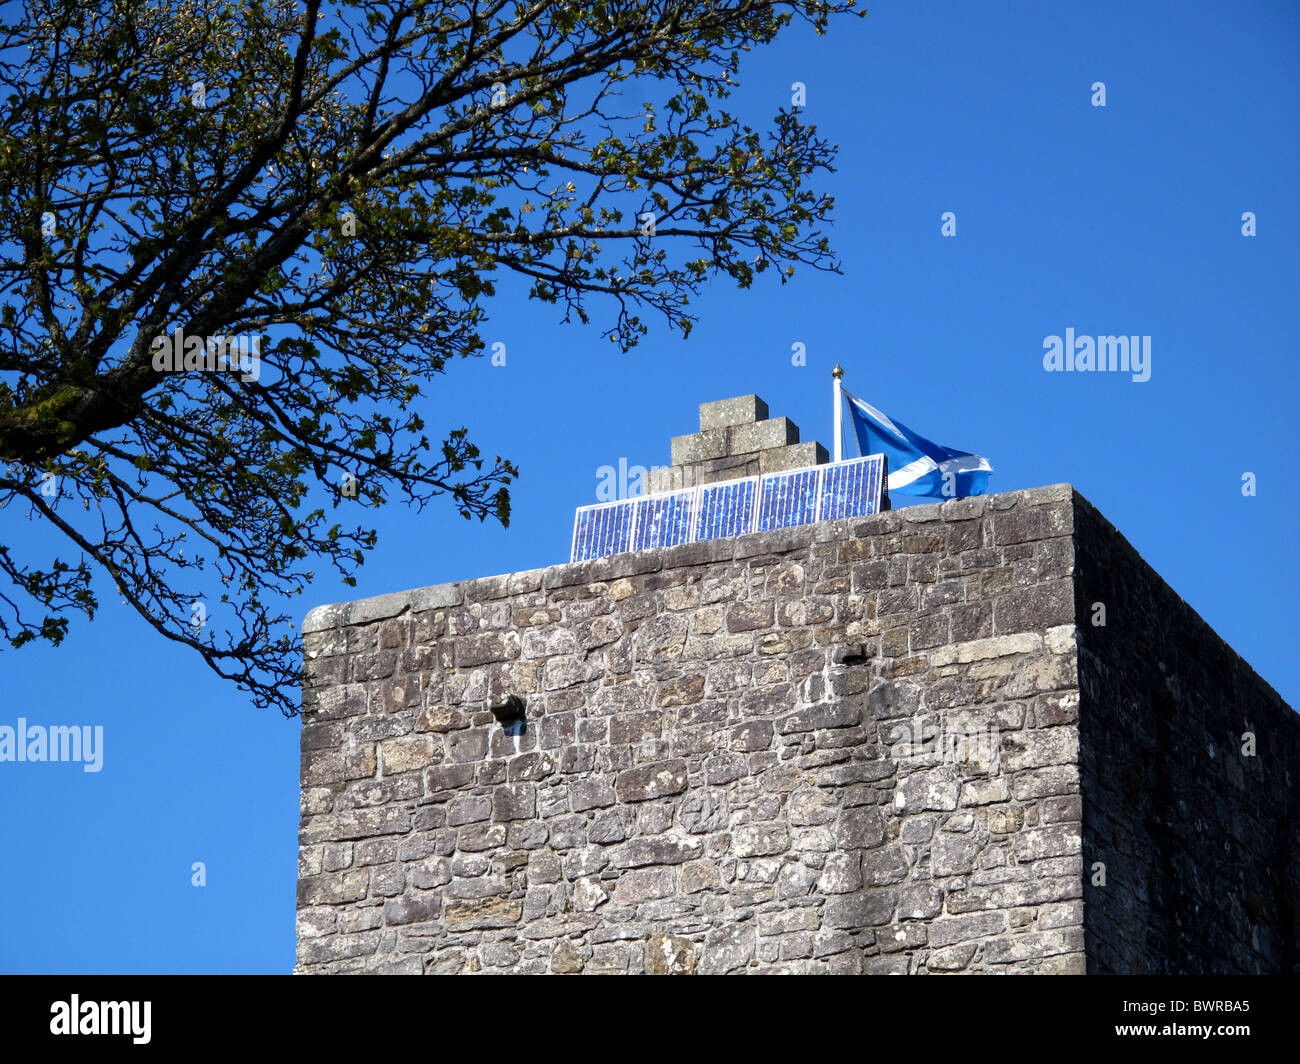 Solar panels on ancient castle roof - Stock Image